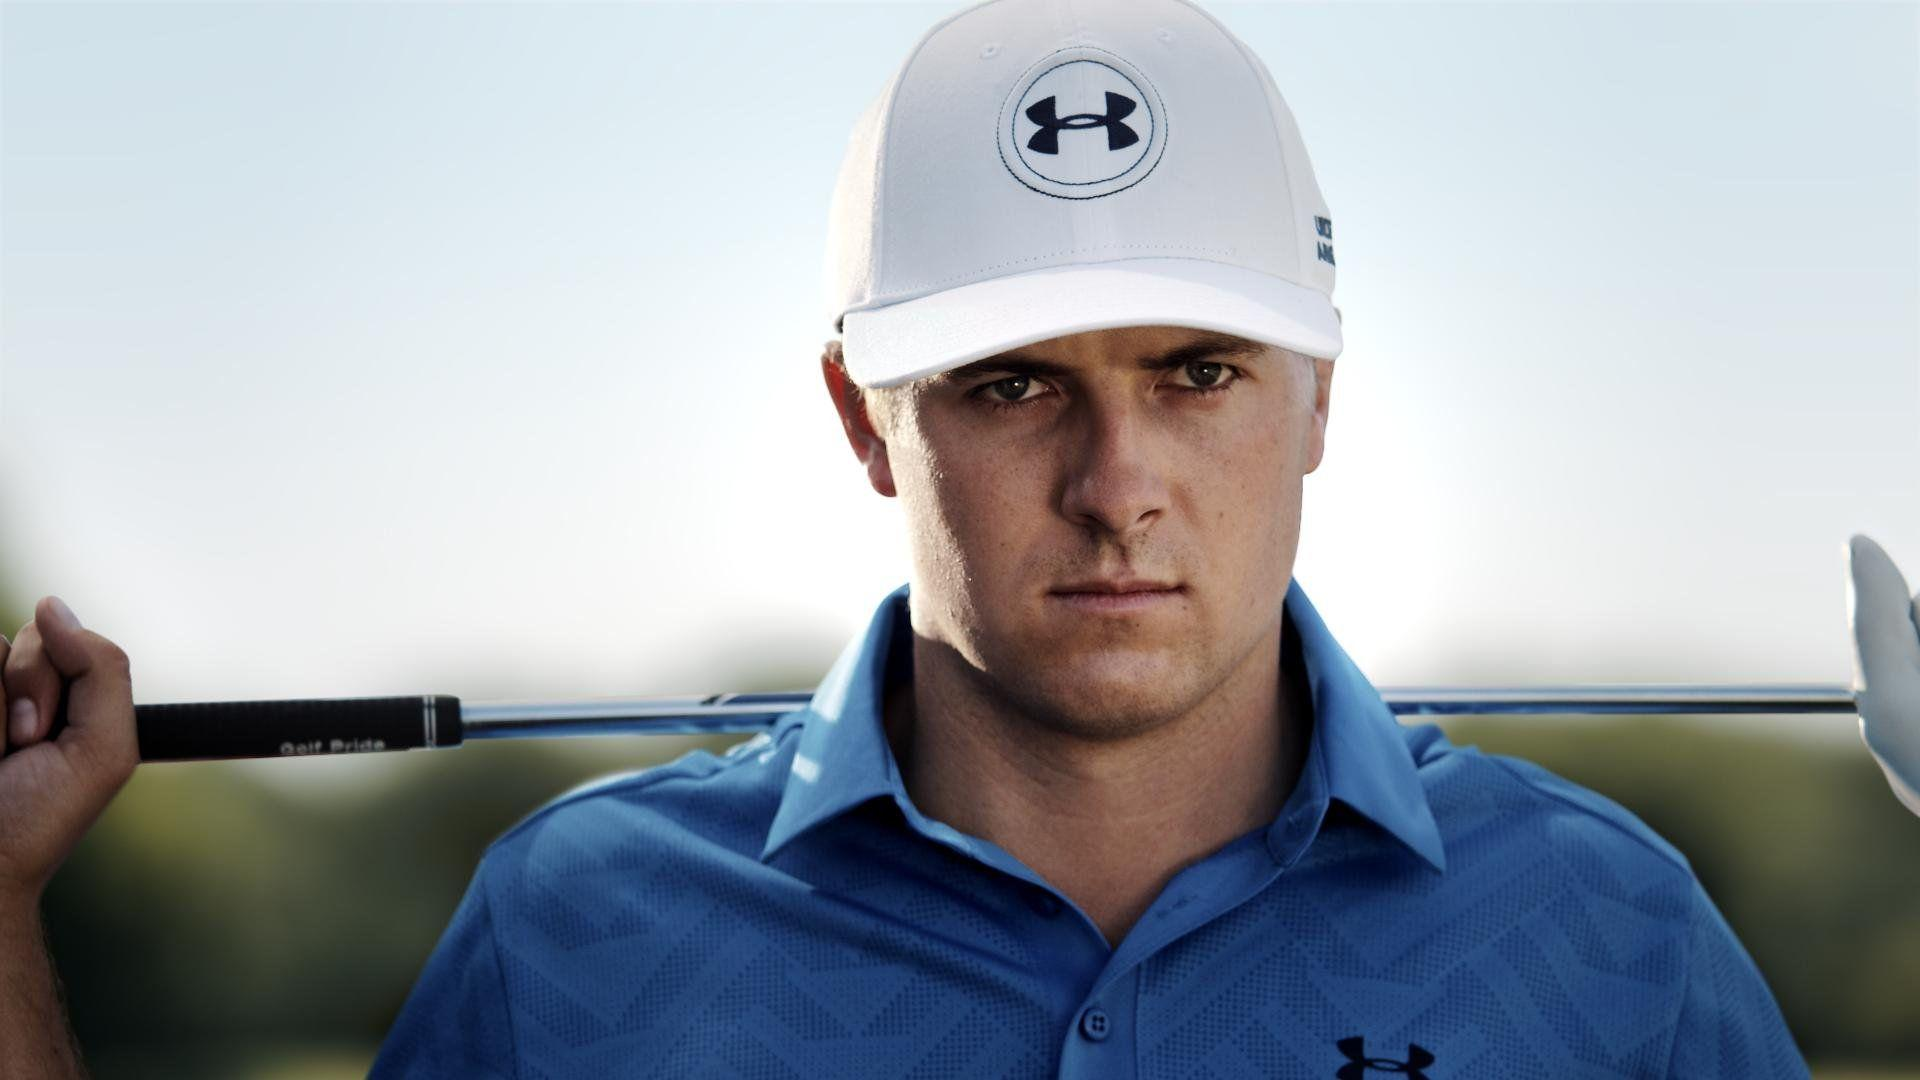 Under Armour has launched its latest shot in its bid to topple